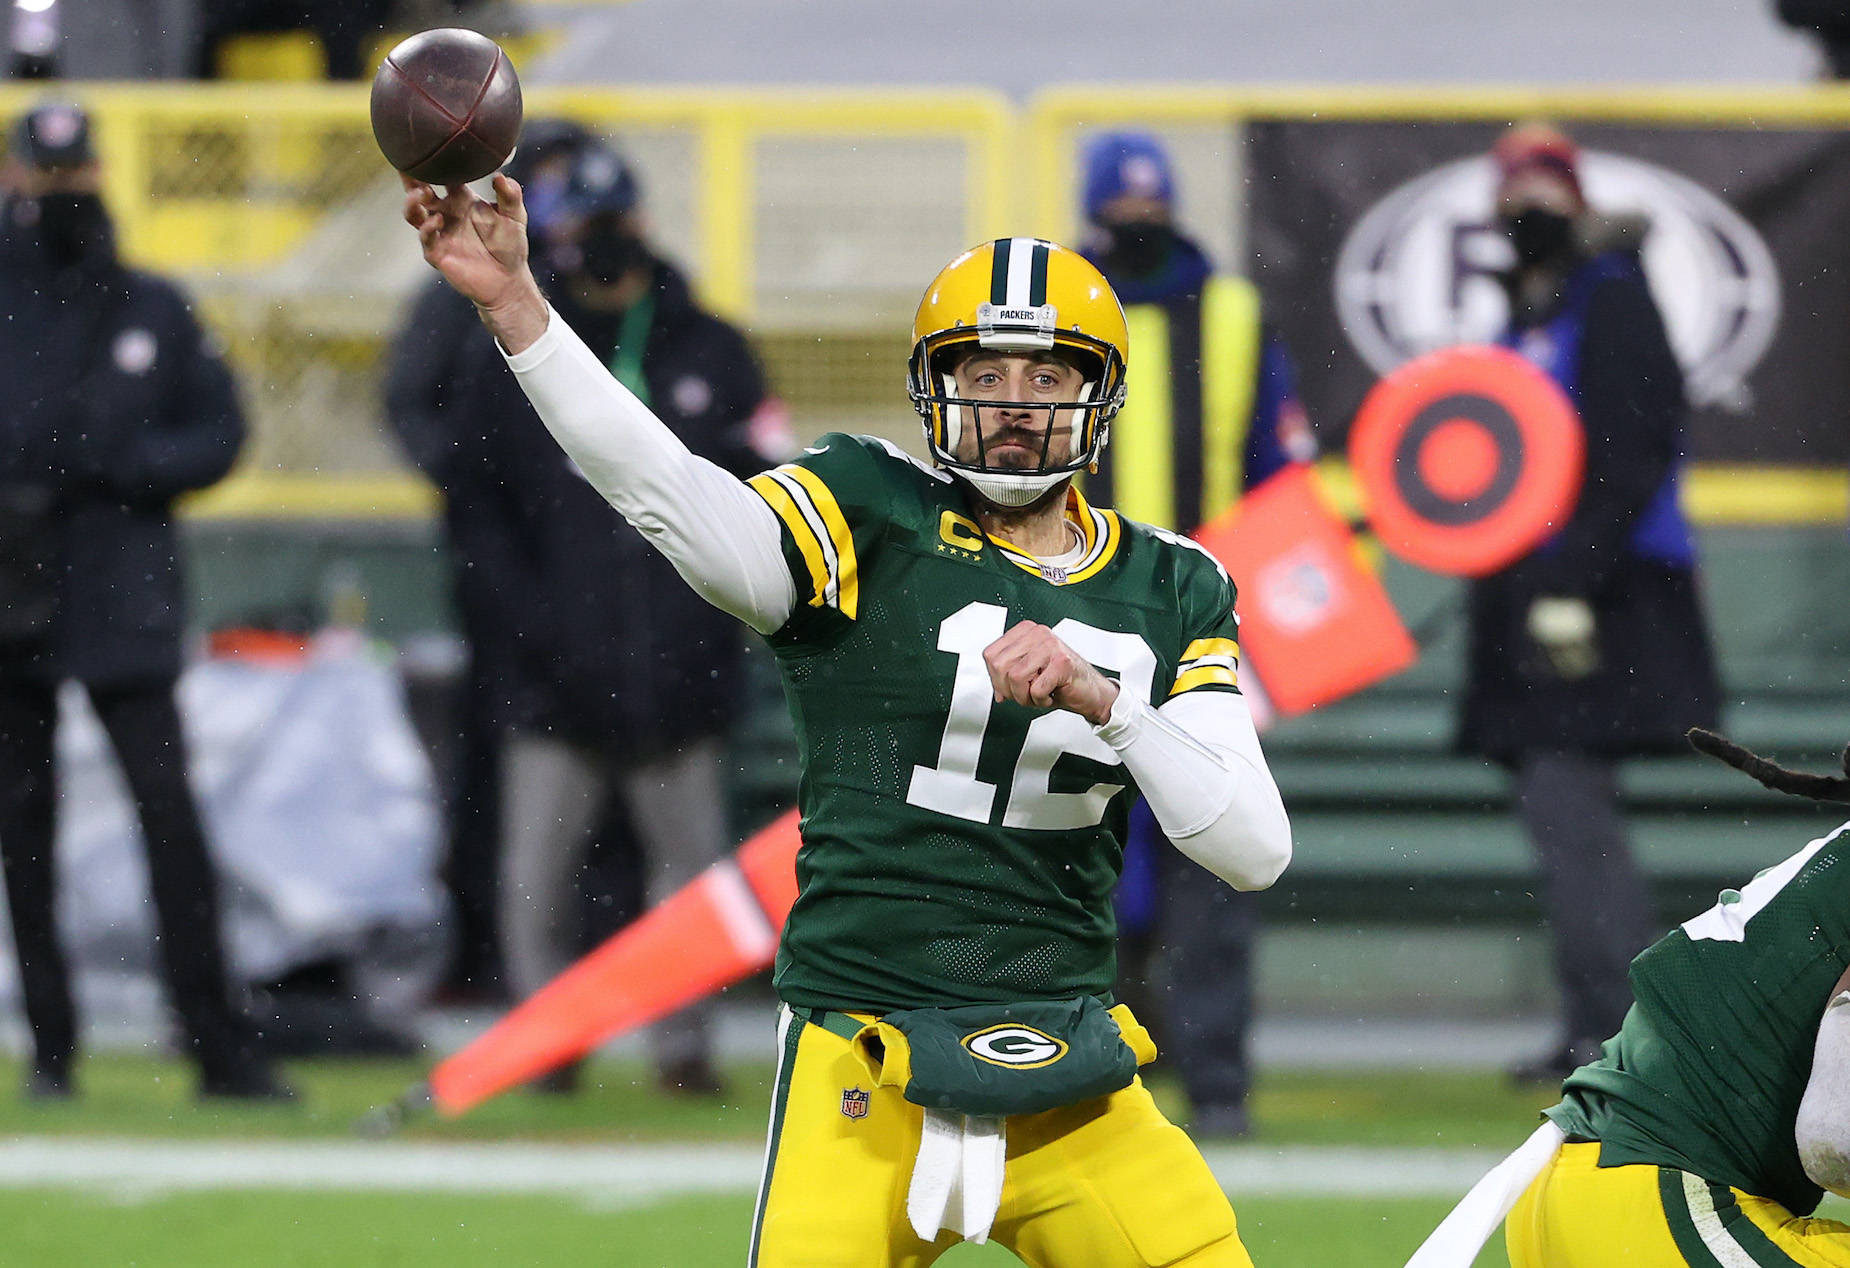 Aaron Rodgers Could Cost the Green Bay Packers Millions of Dollars They Don't Have to Spend in Addition to Ruining their Super Bowl Chances